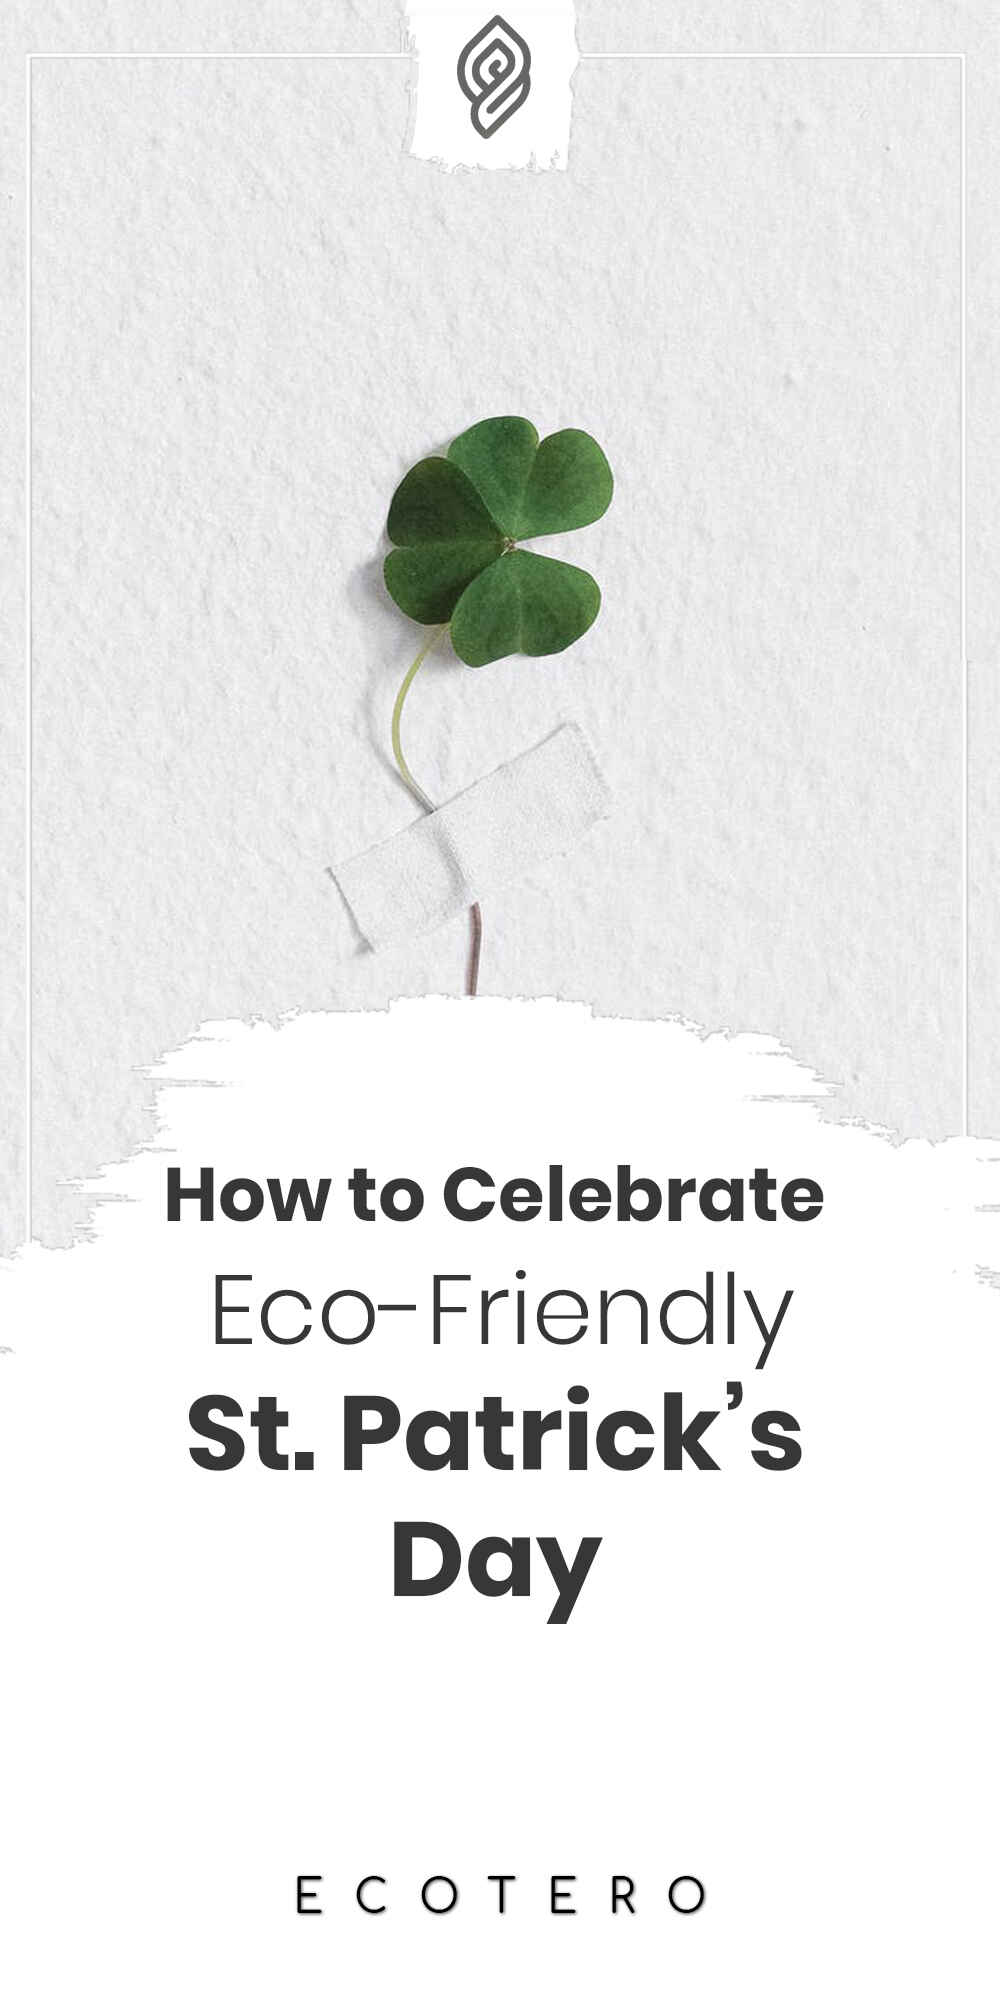 Eco-Friendly St. Patrick's Day Tips